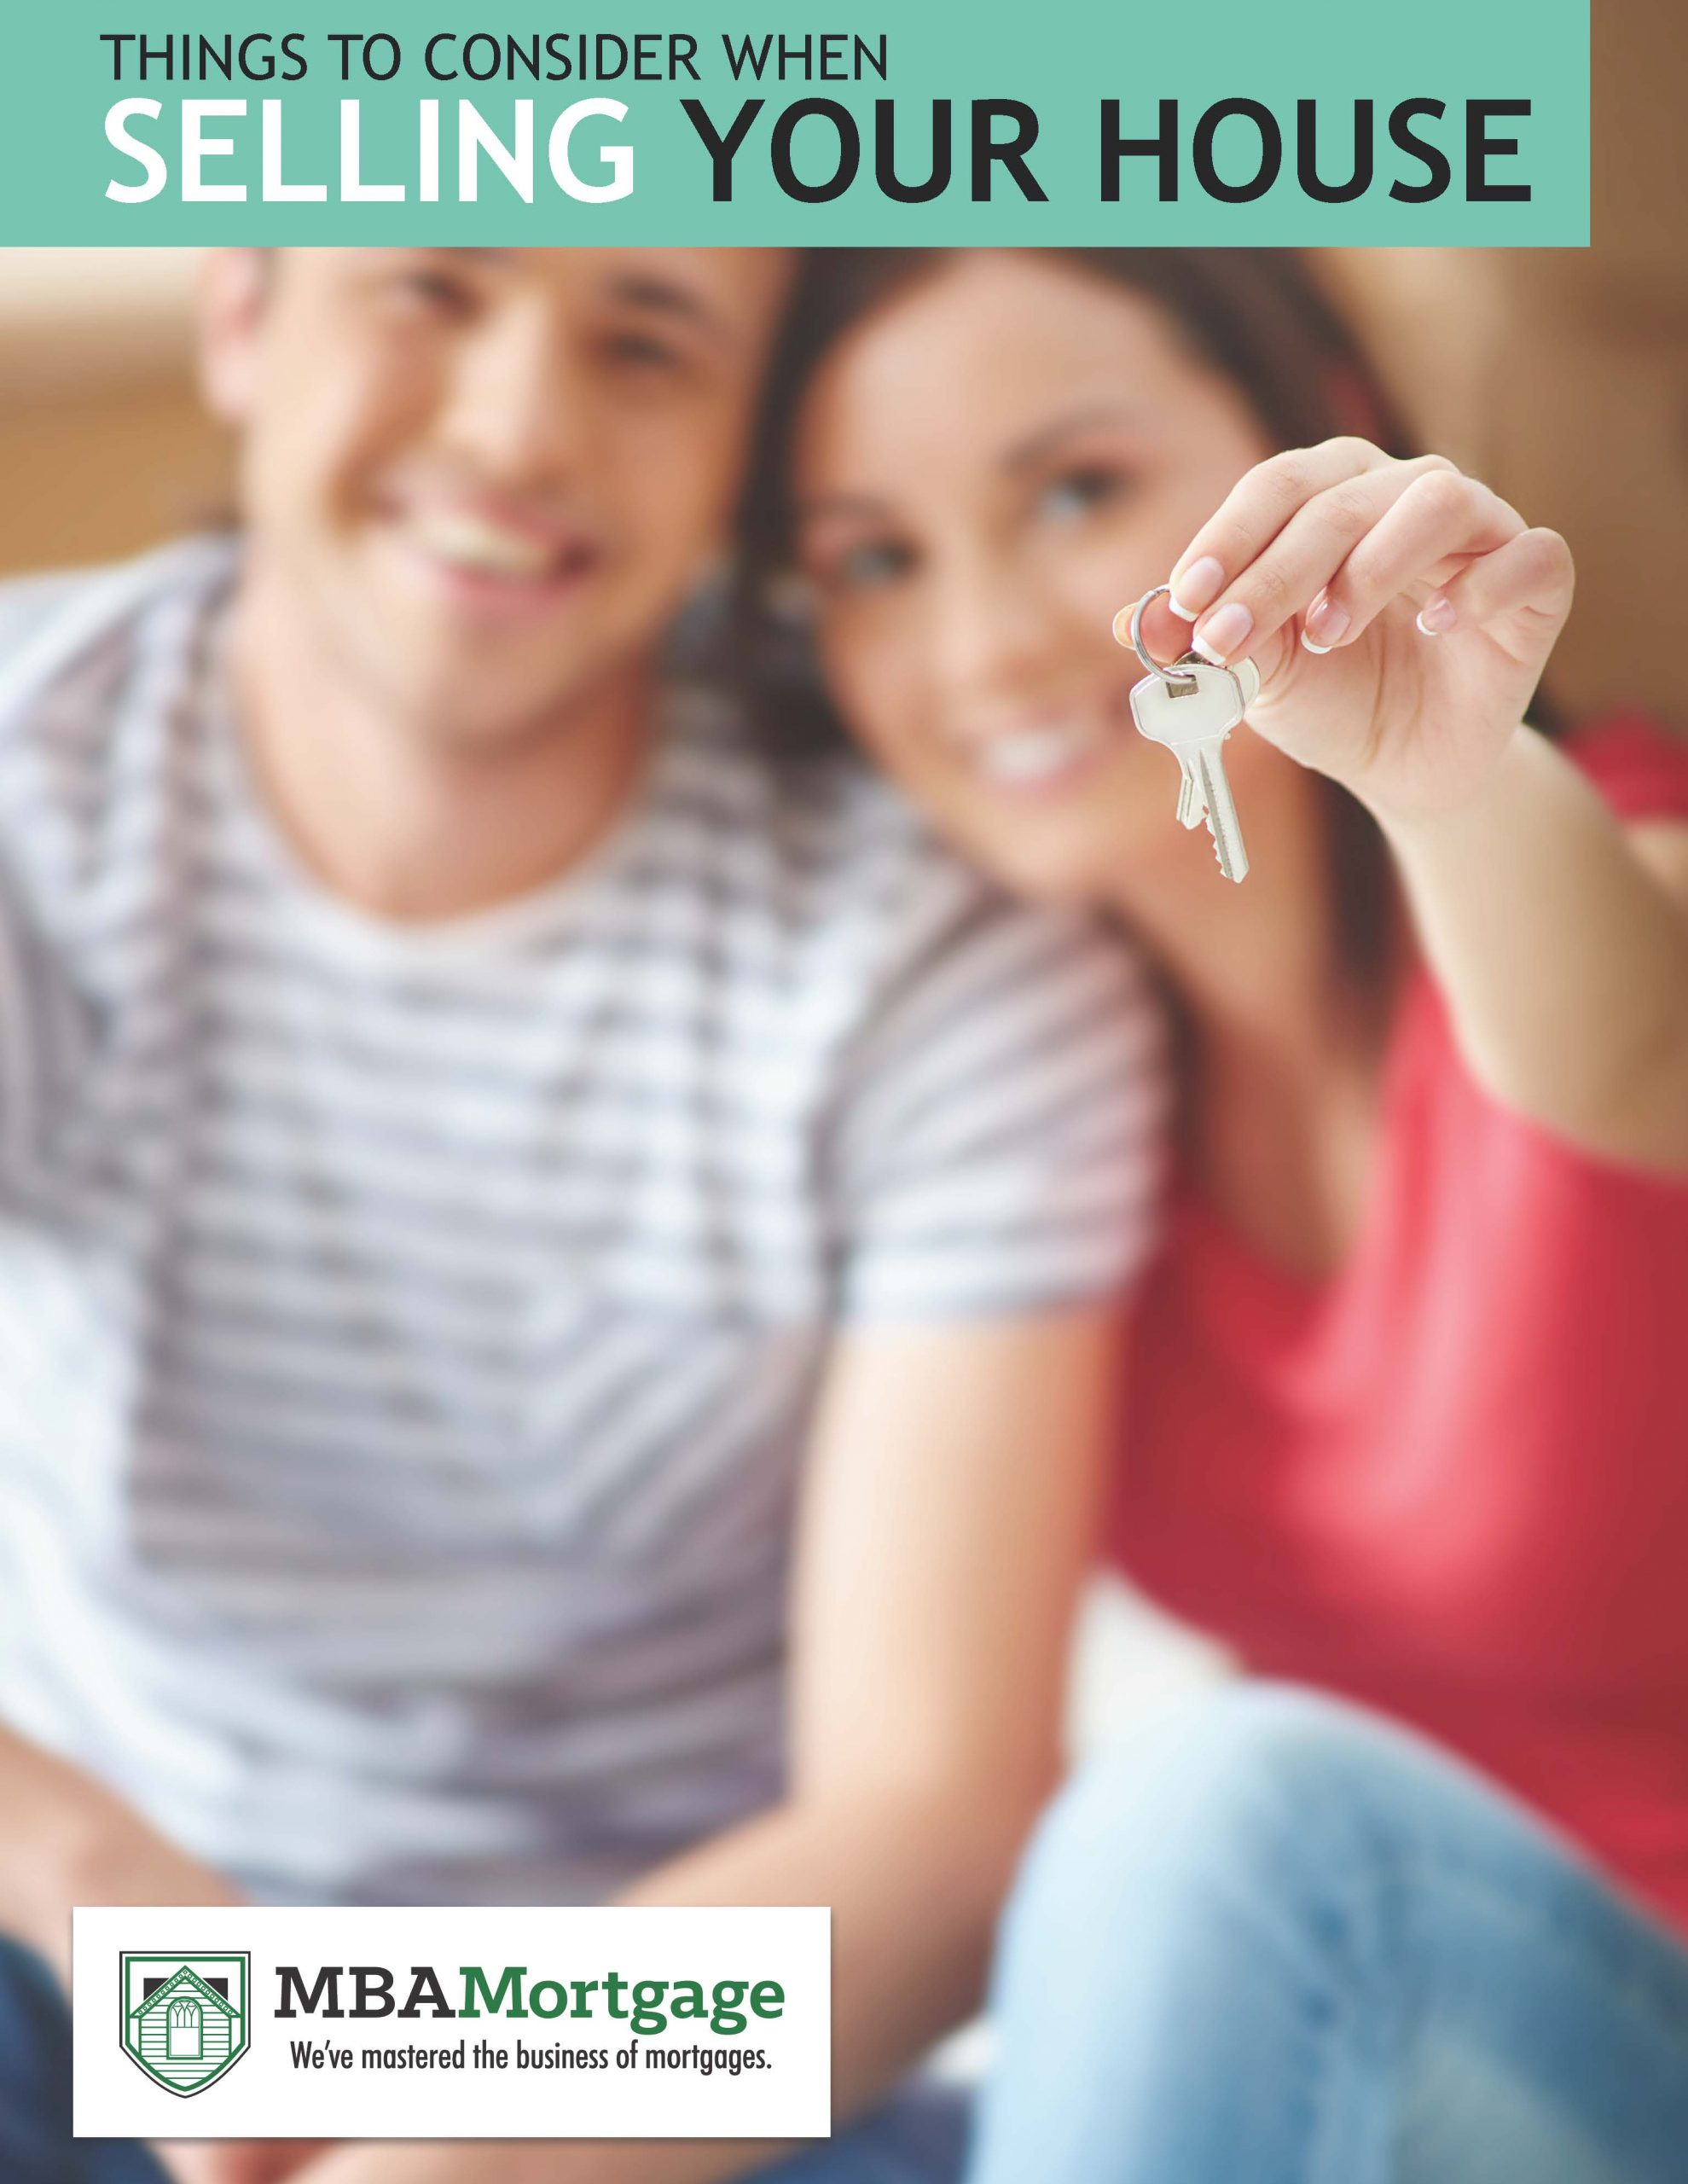 Things To Consider When Selling Your House